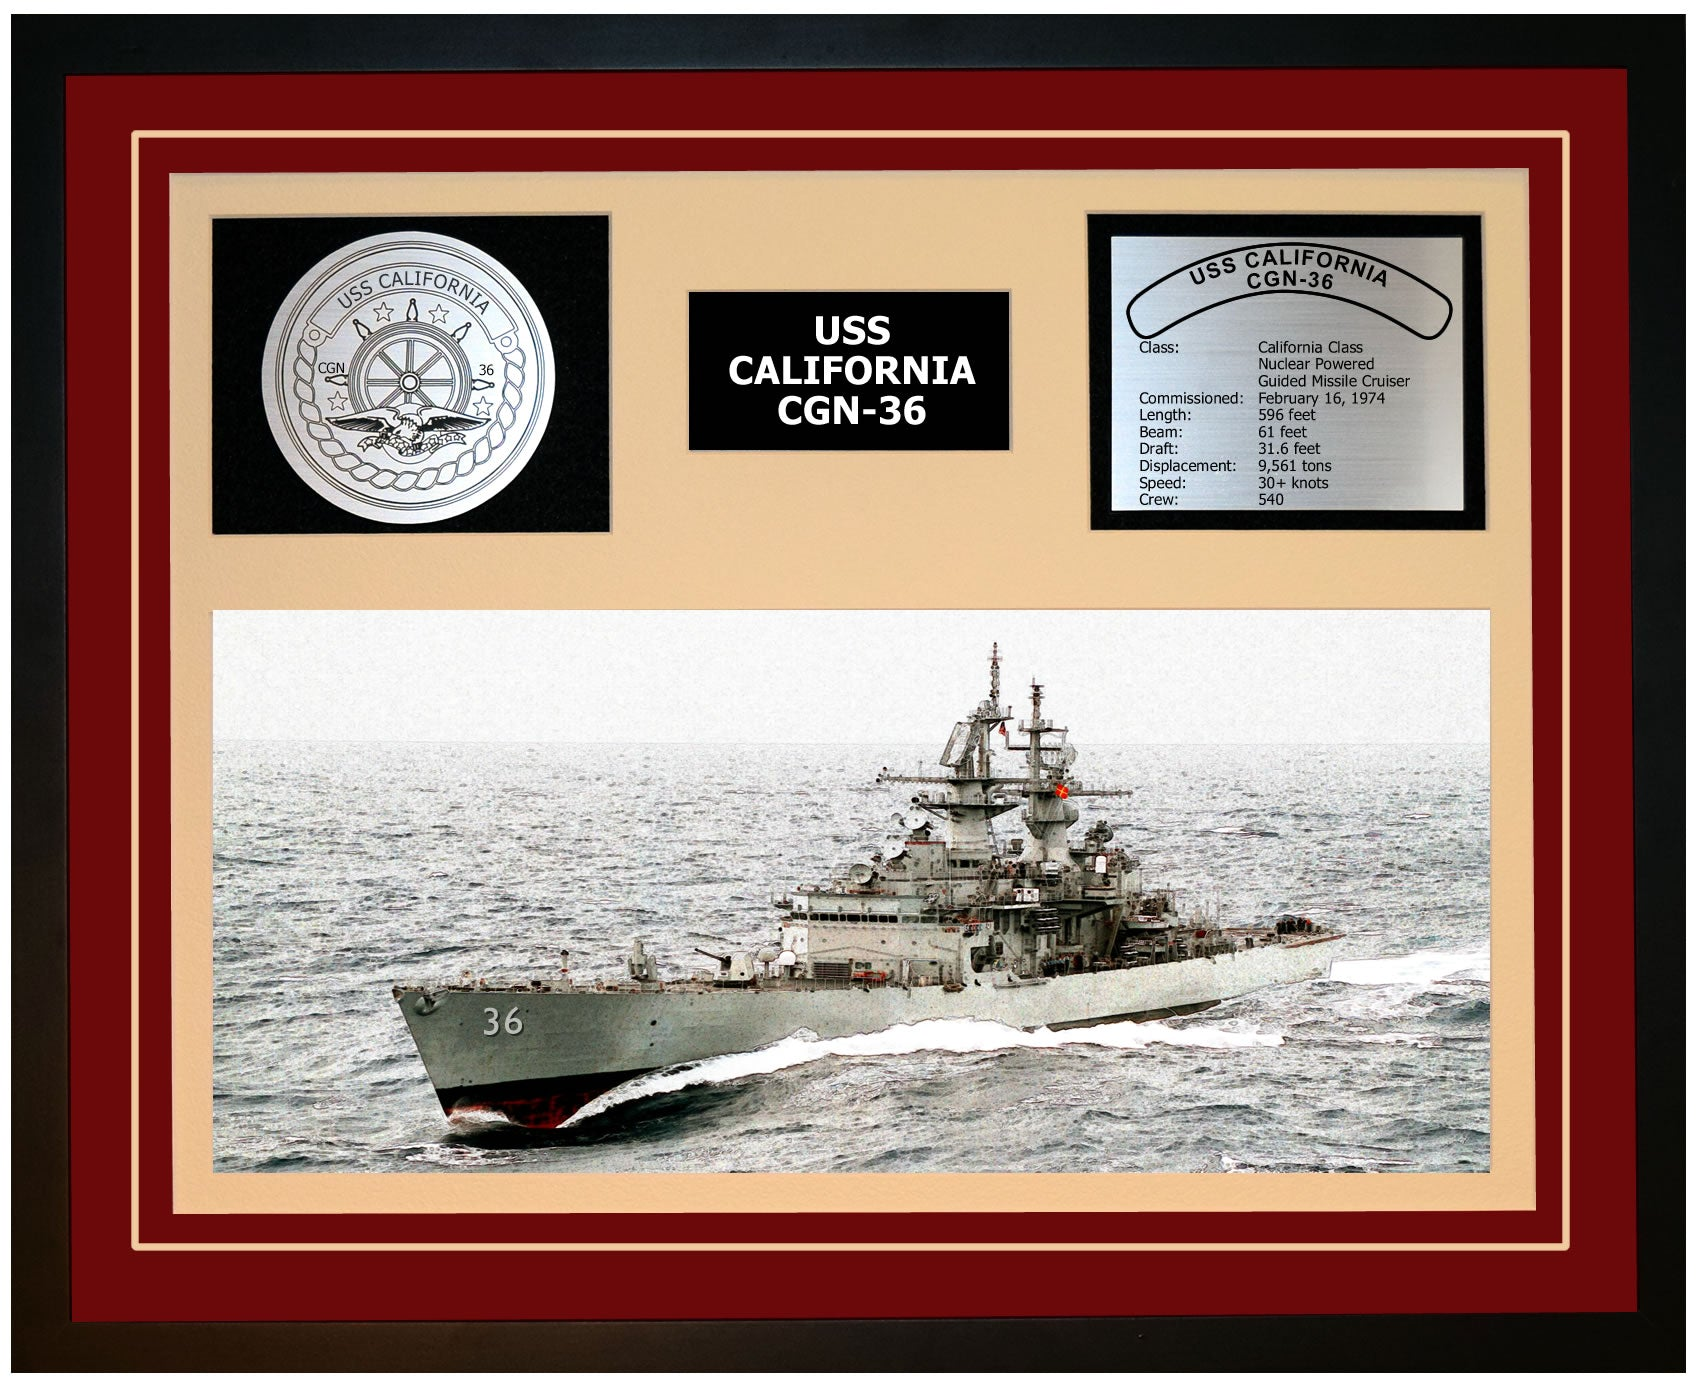 USS CALIFORNIA CGN-36 Framed Navy Ship Display Burgundy